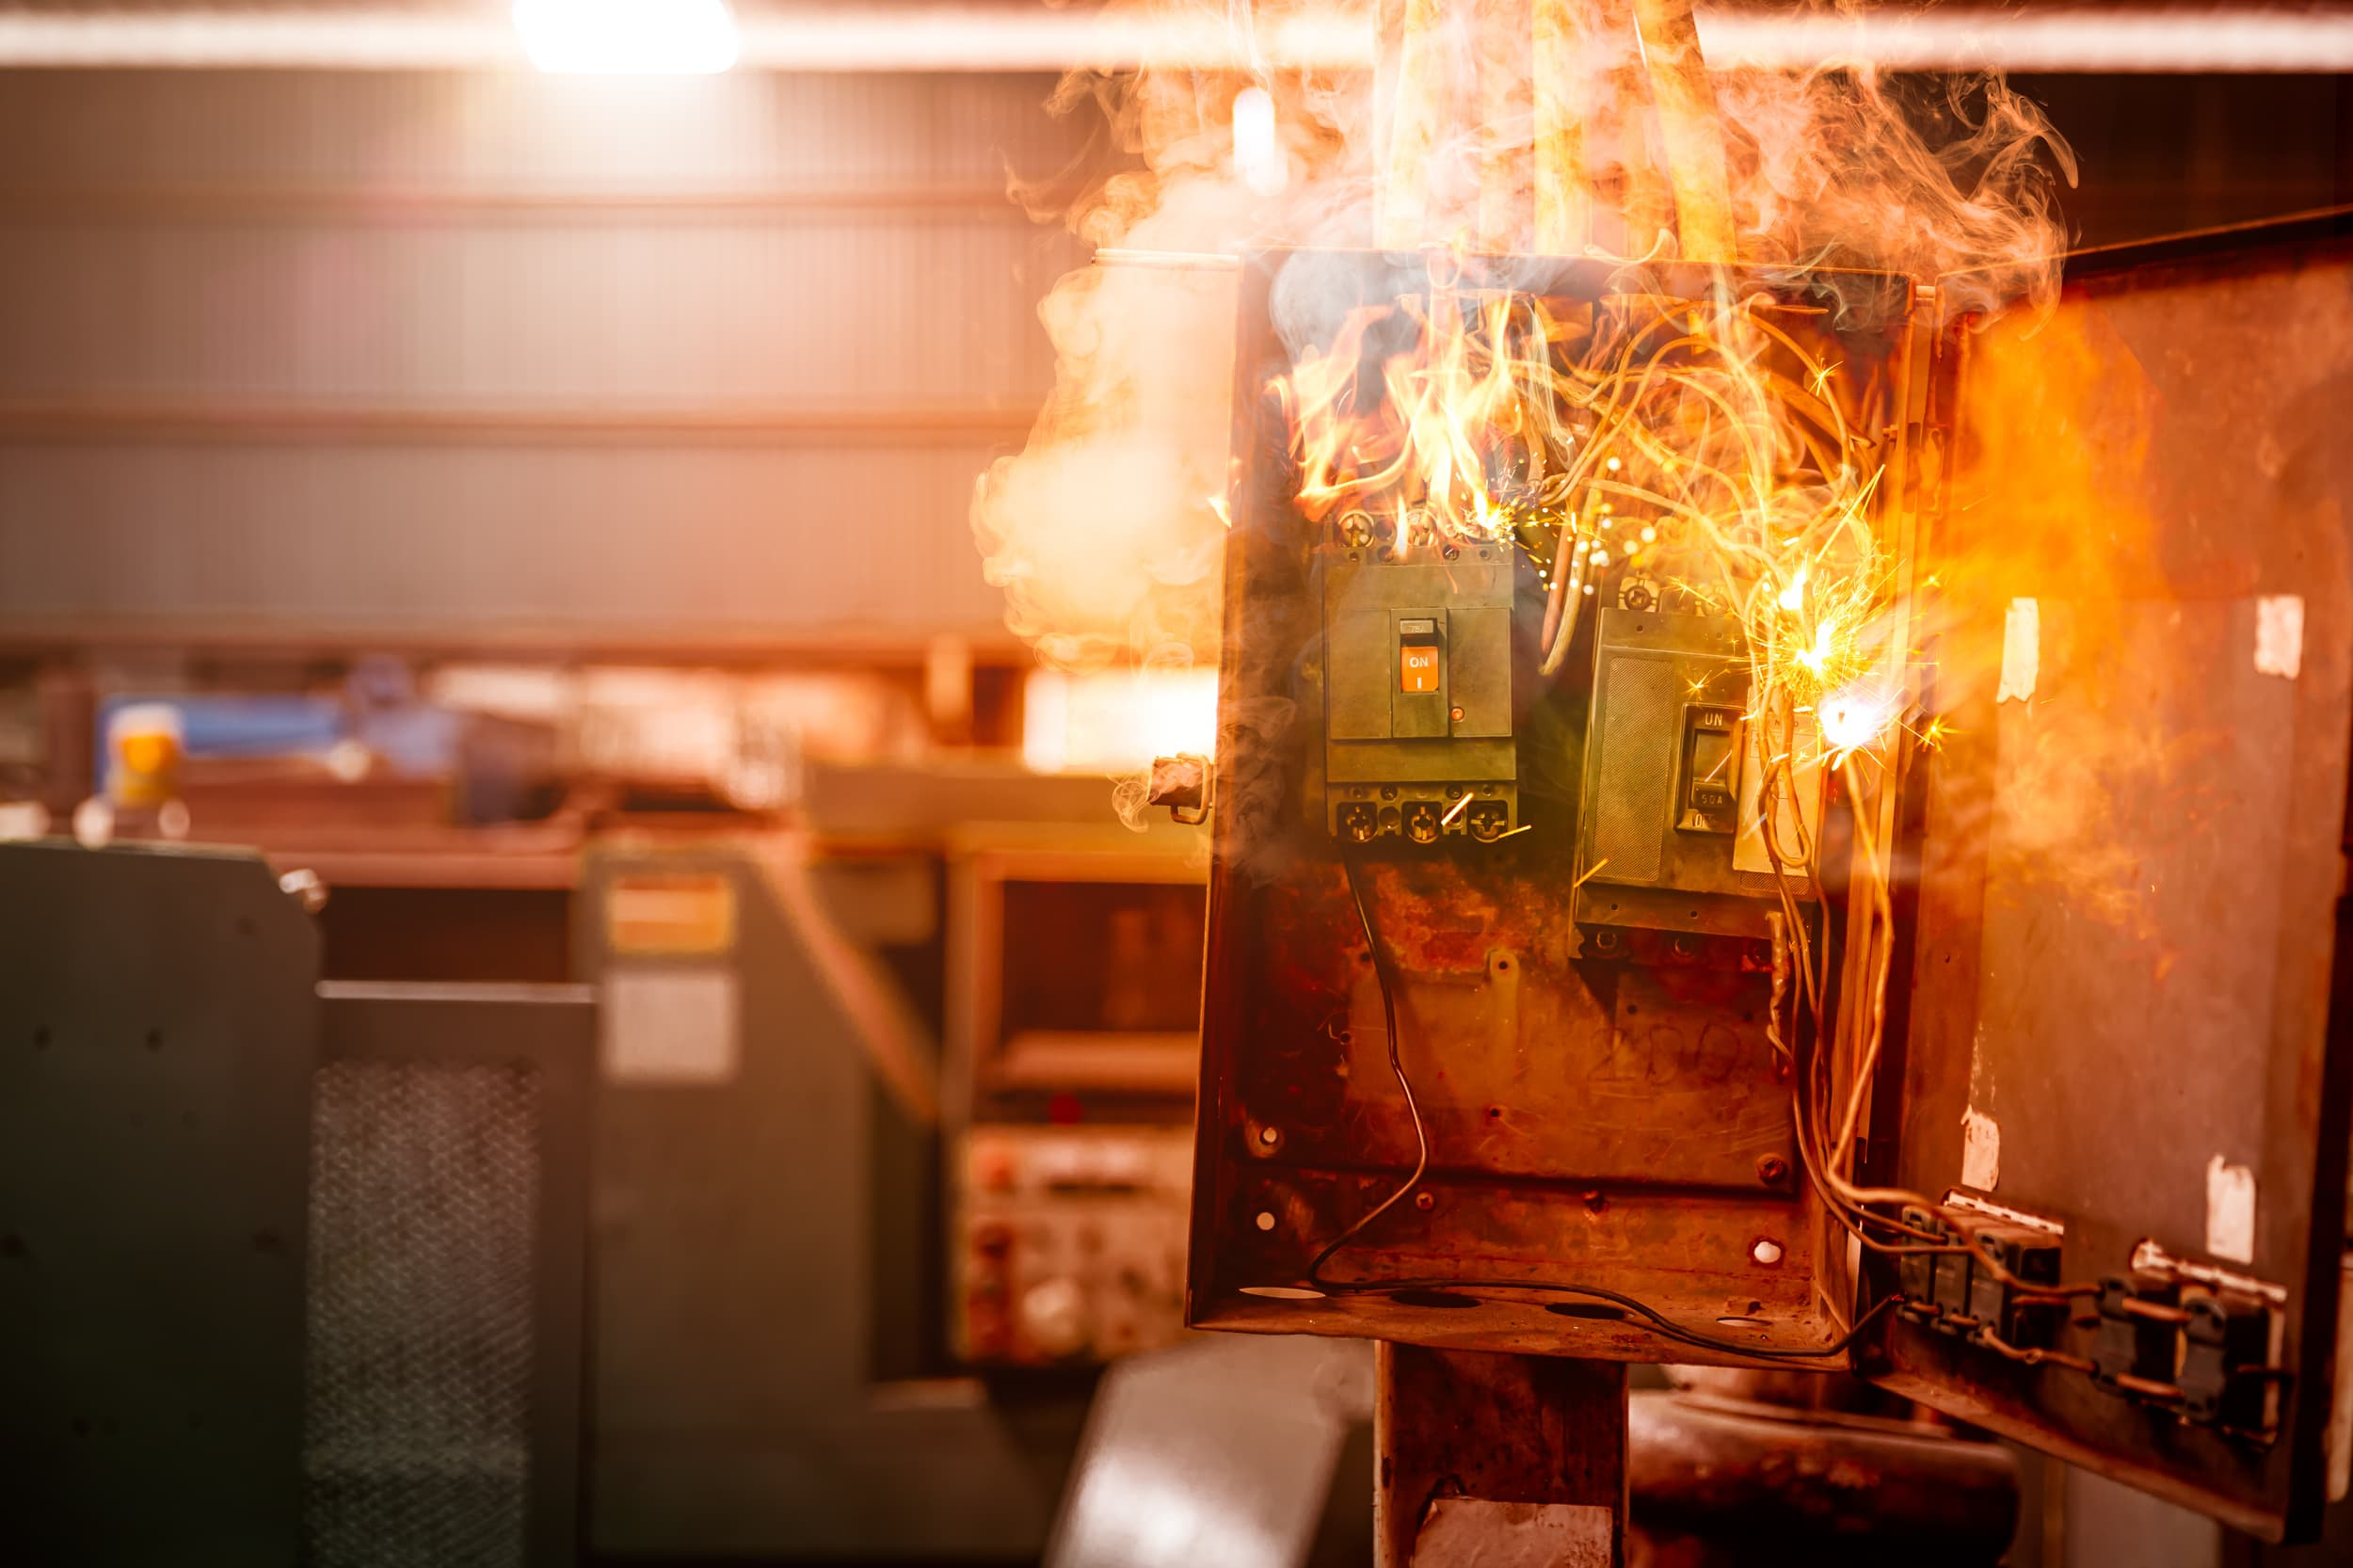 Compliance Training Online Arc Flash Safety course